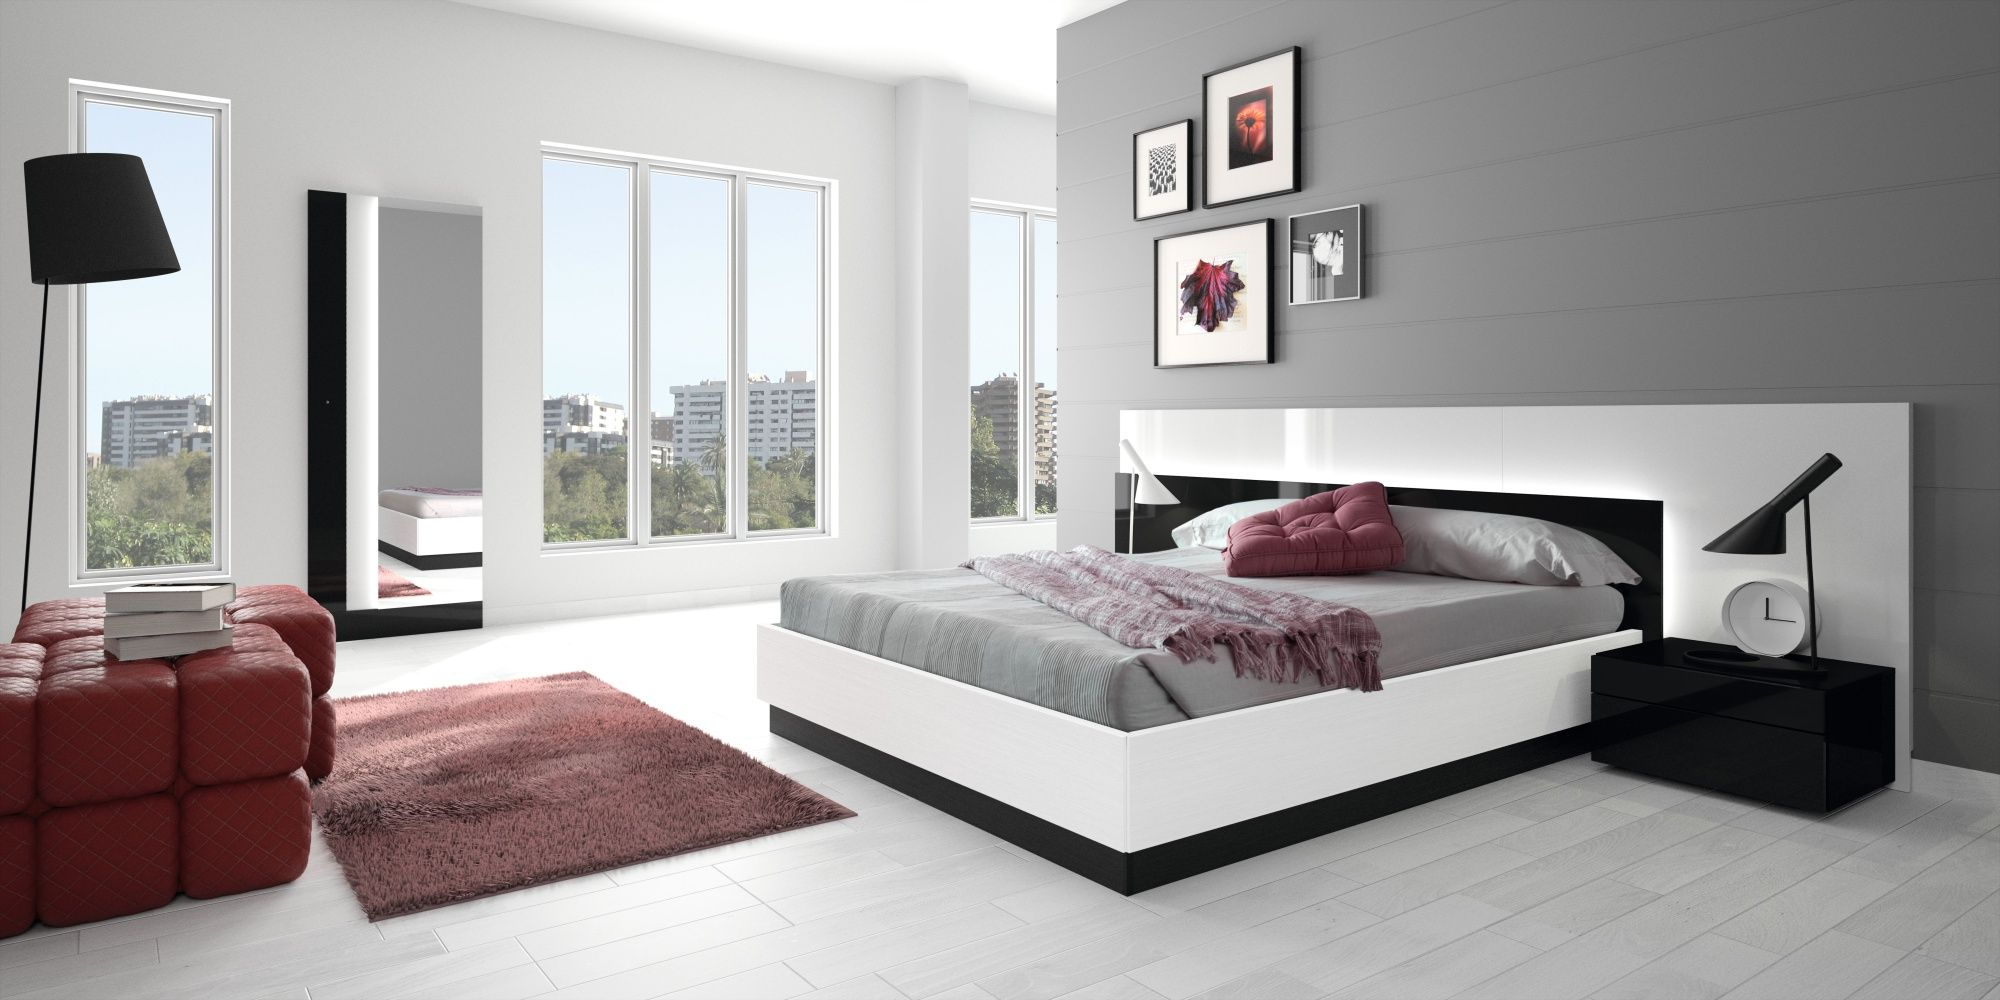 home project stunning affordable furniture cheap awesome mirrored design discounts silver with and interior bedroom